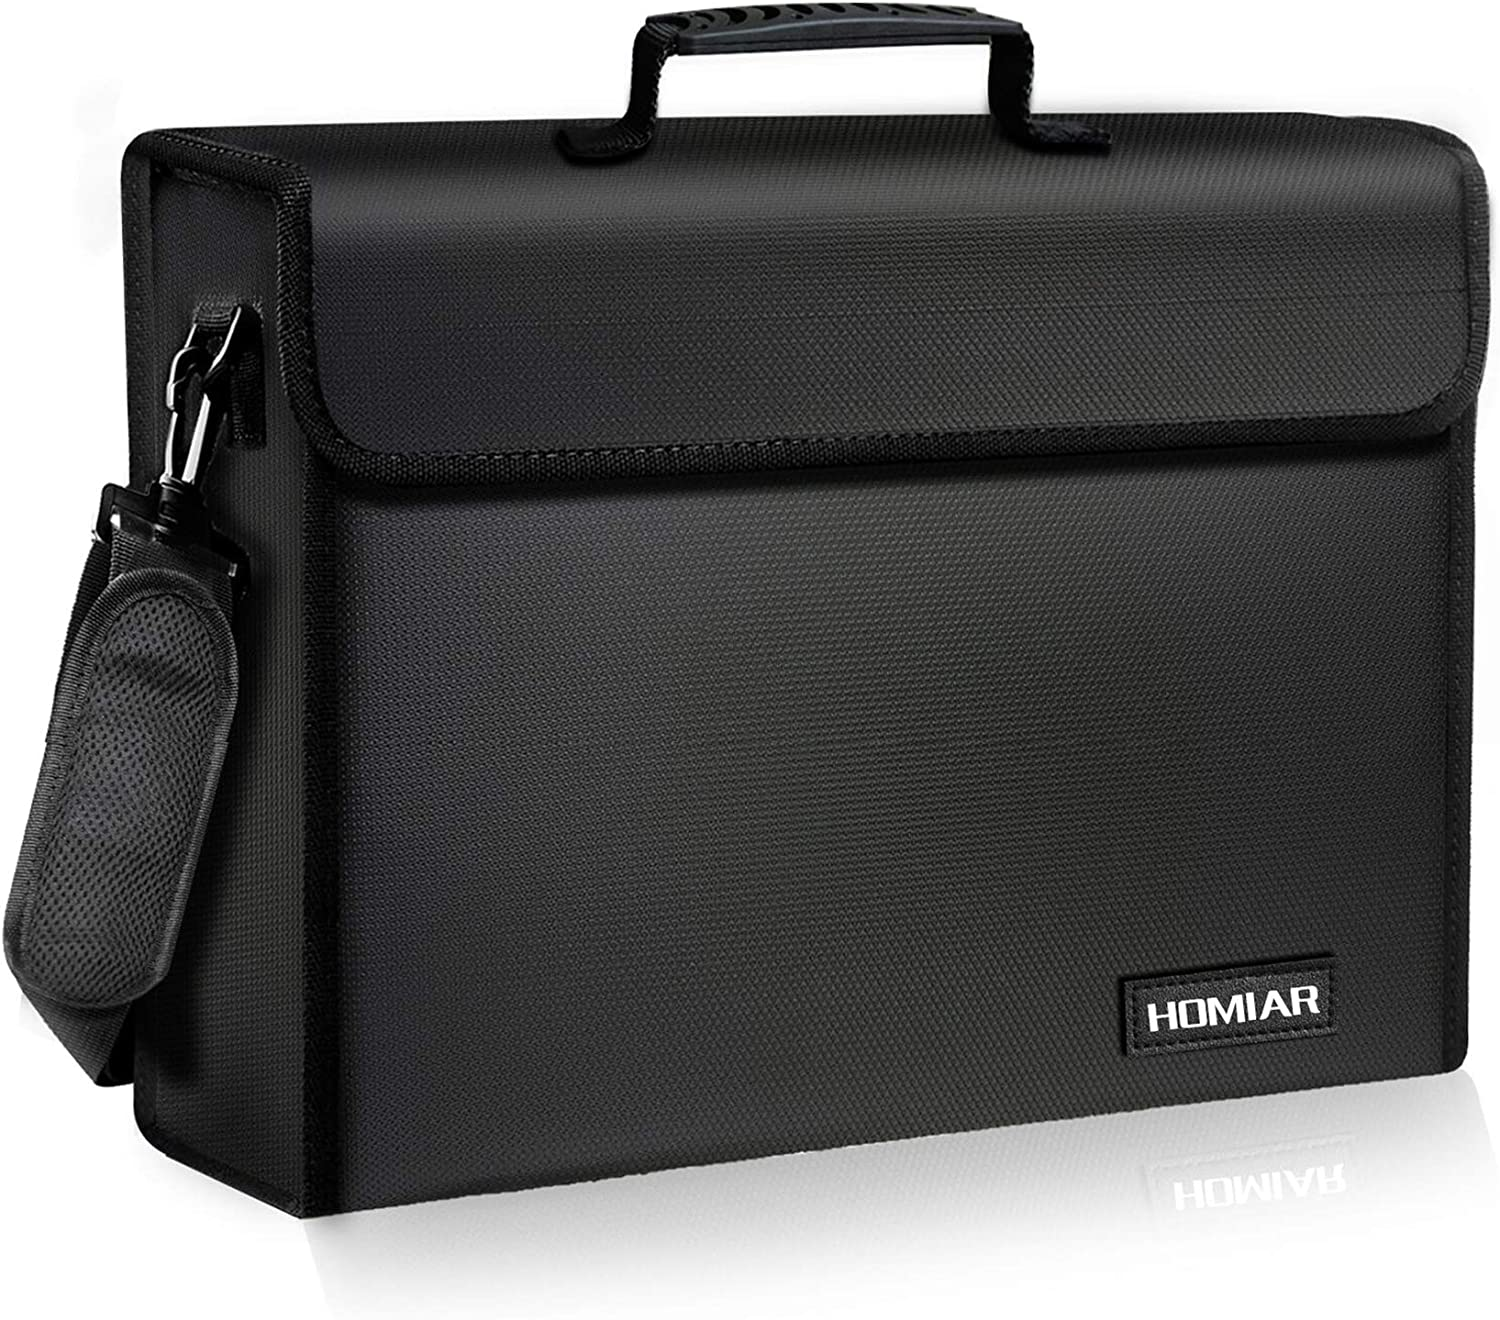 Fireproof Document Bag - X Large Stora Sale Special Price Bags Waterproof Safe Louisville-Jefferson County Mall File